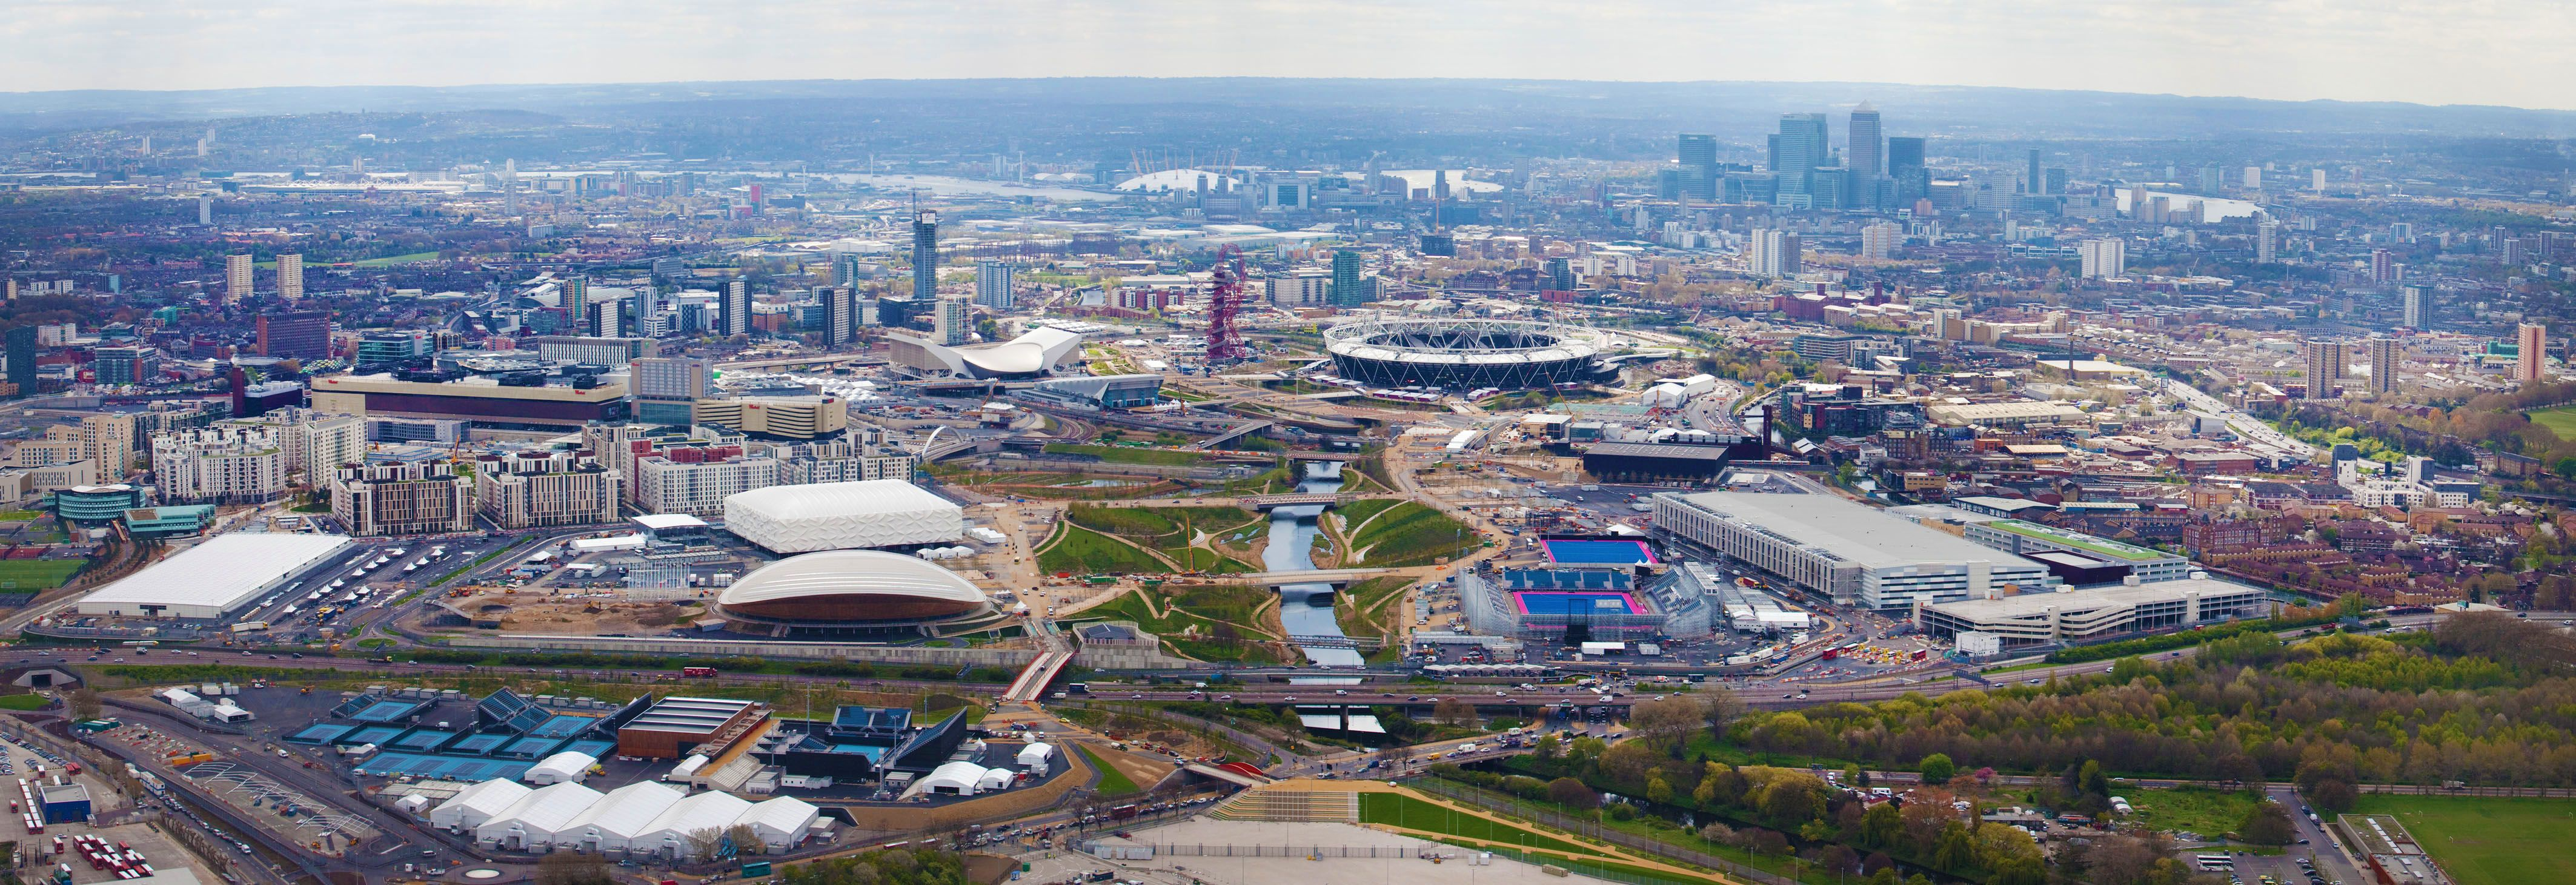 aerial view of olympic park london